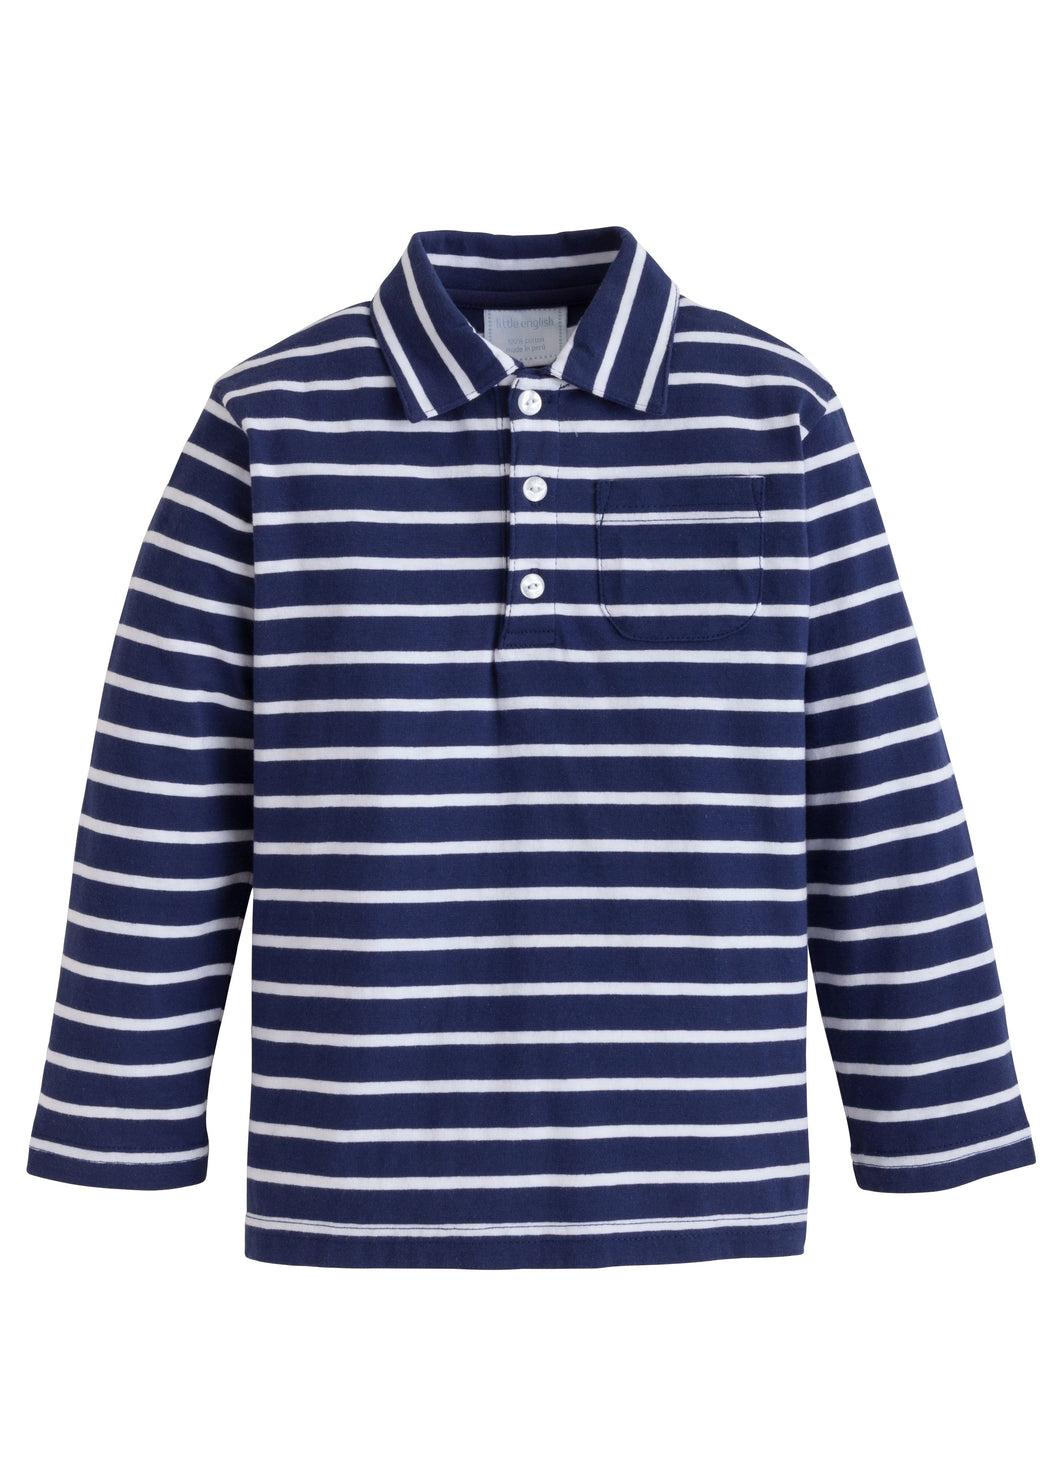 Long Sleeve Navy Striped Polo